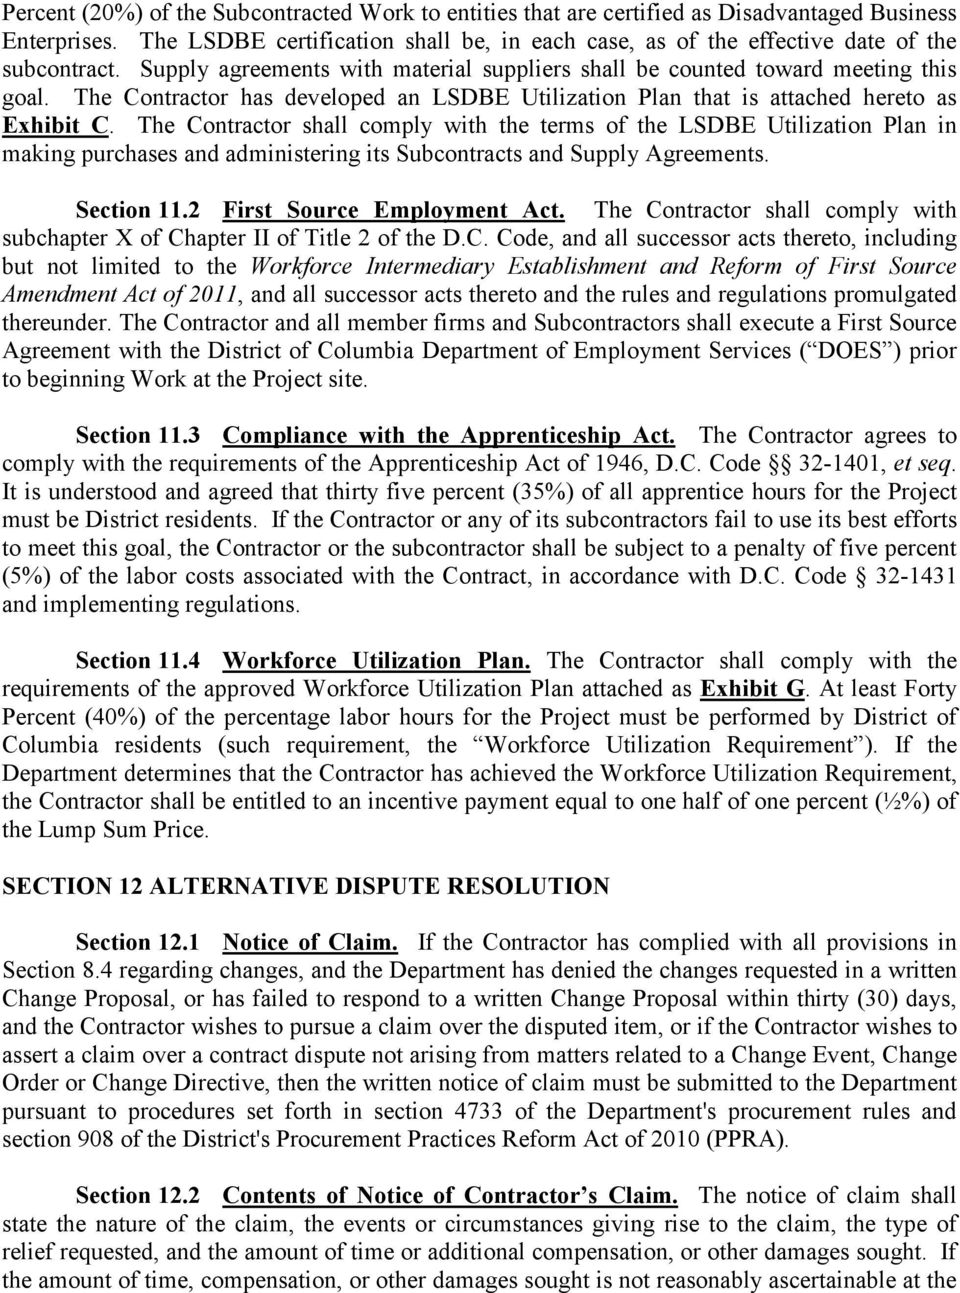 GOVERNMENT OF THE DISTRICT OF COLUMBIA DEPARTMENT OF